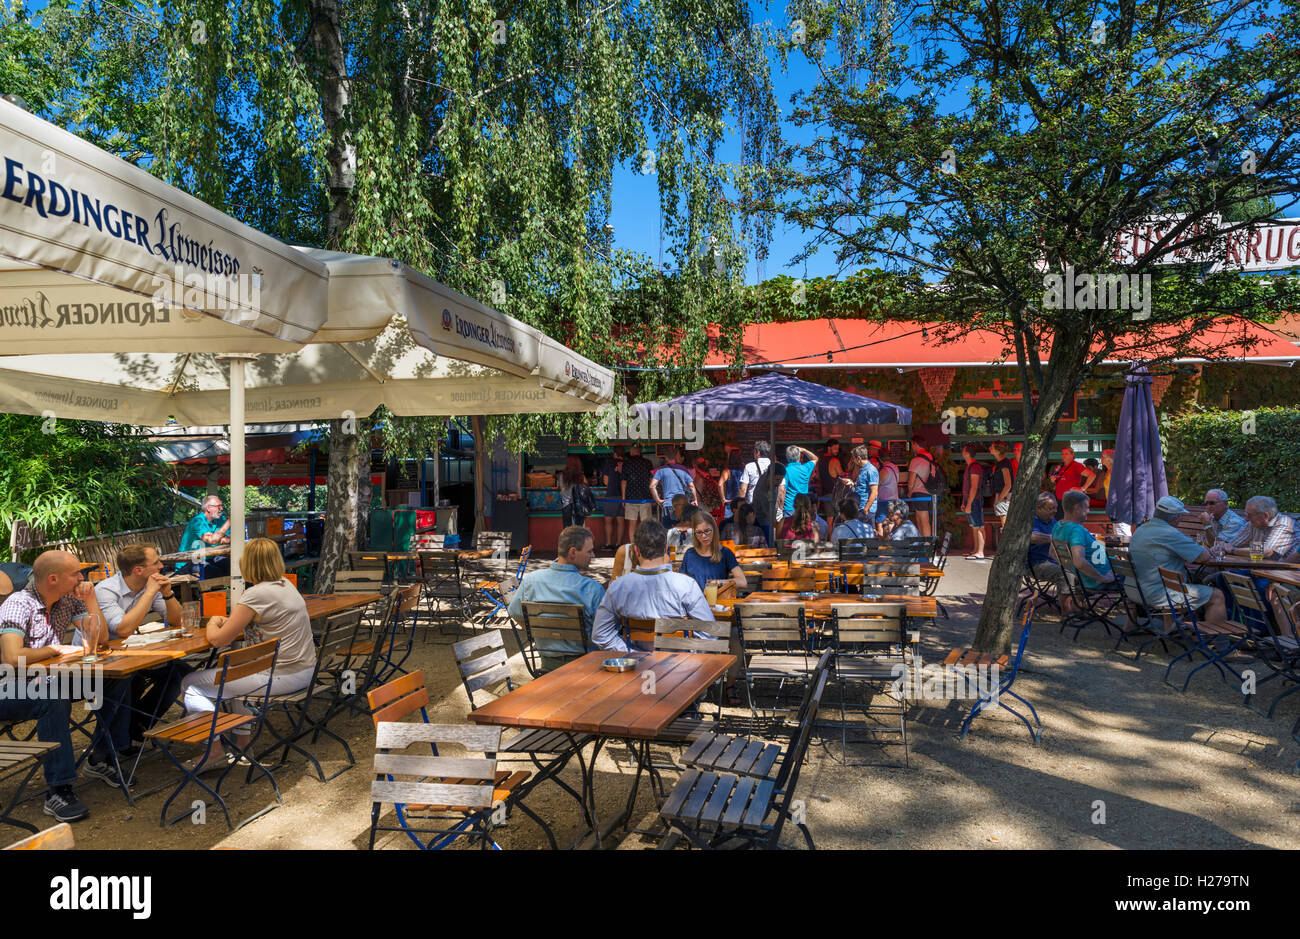 Beer garden in the Tiergarten, Berlin, Germany - Stock Image